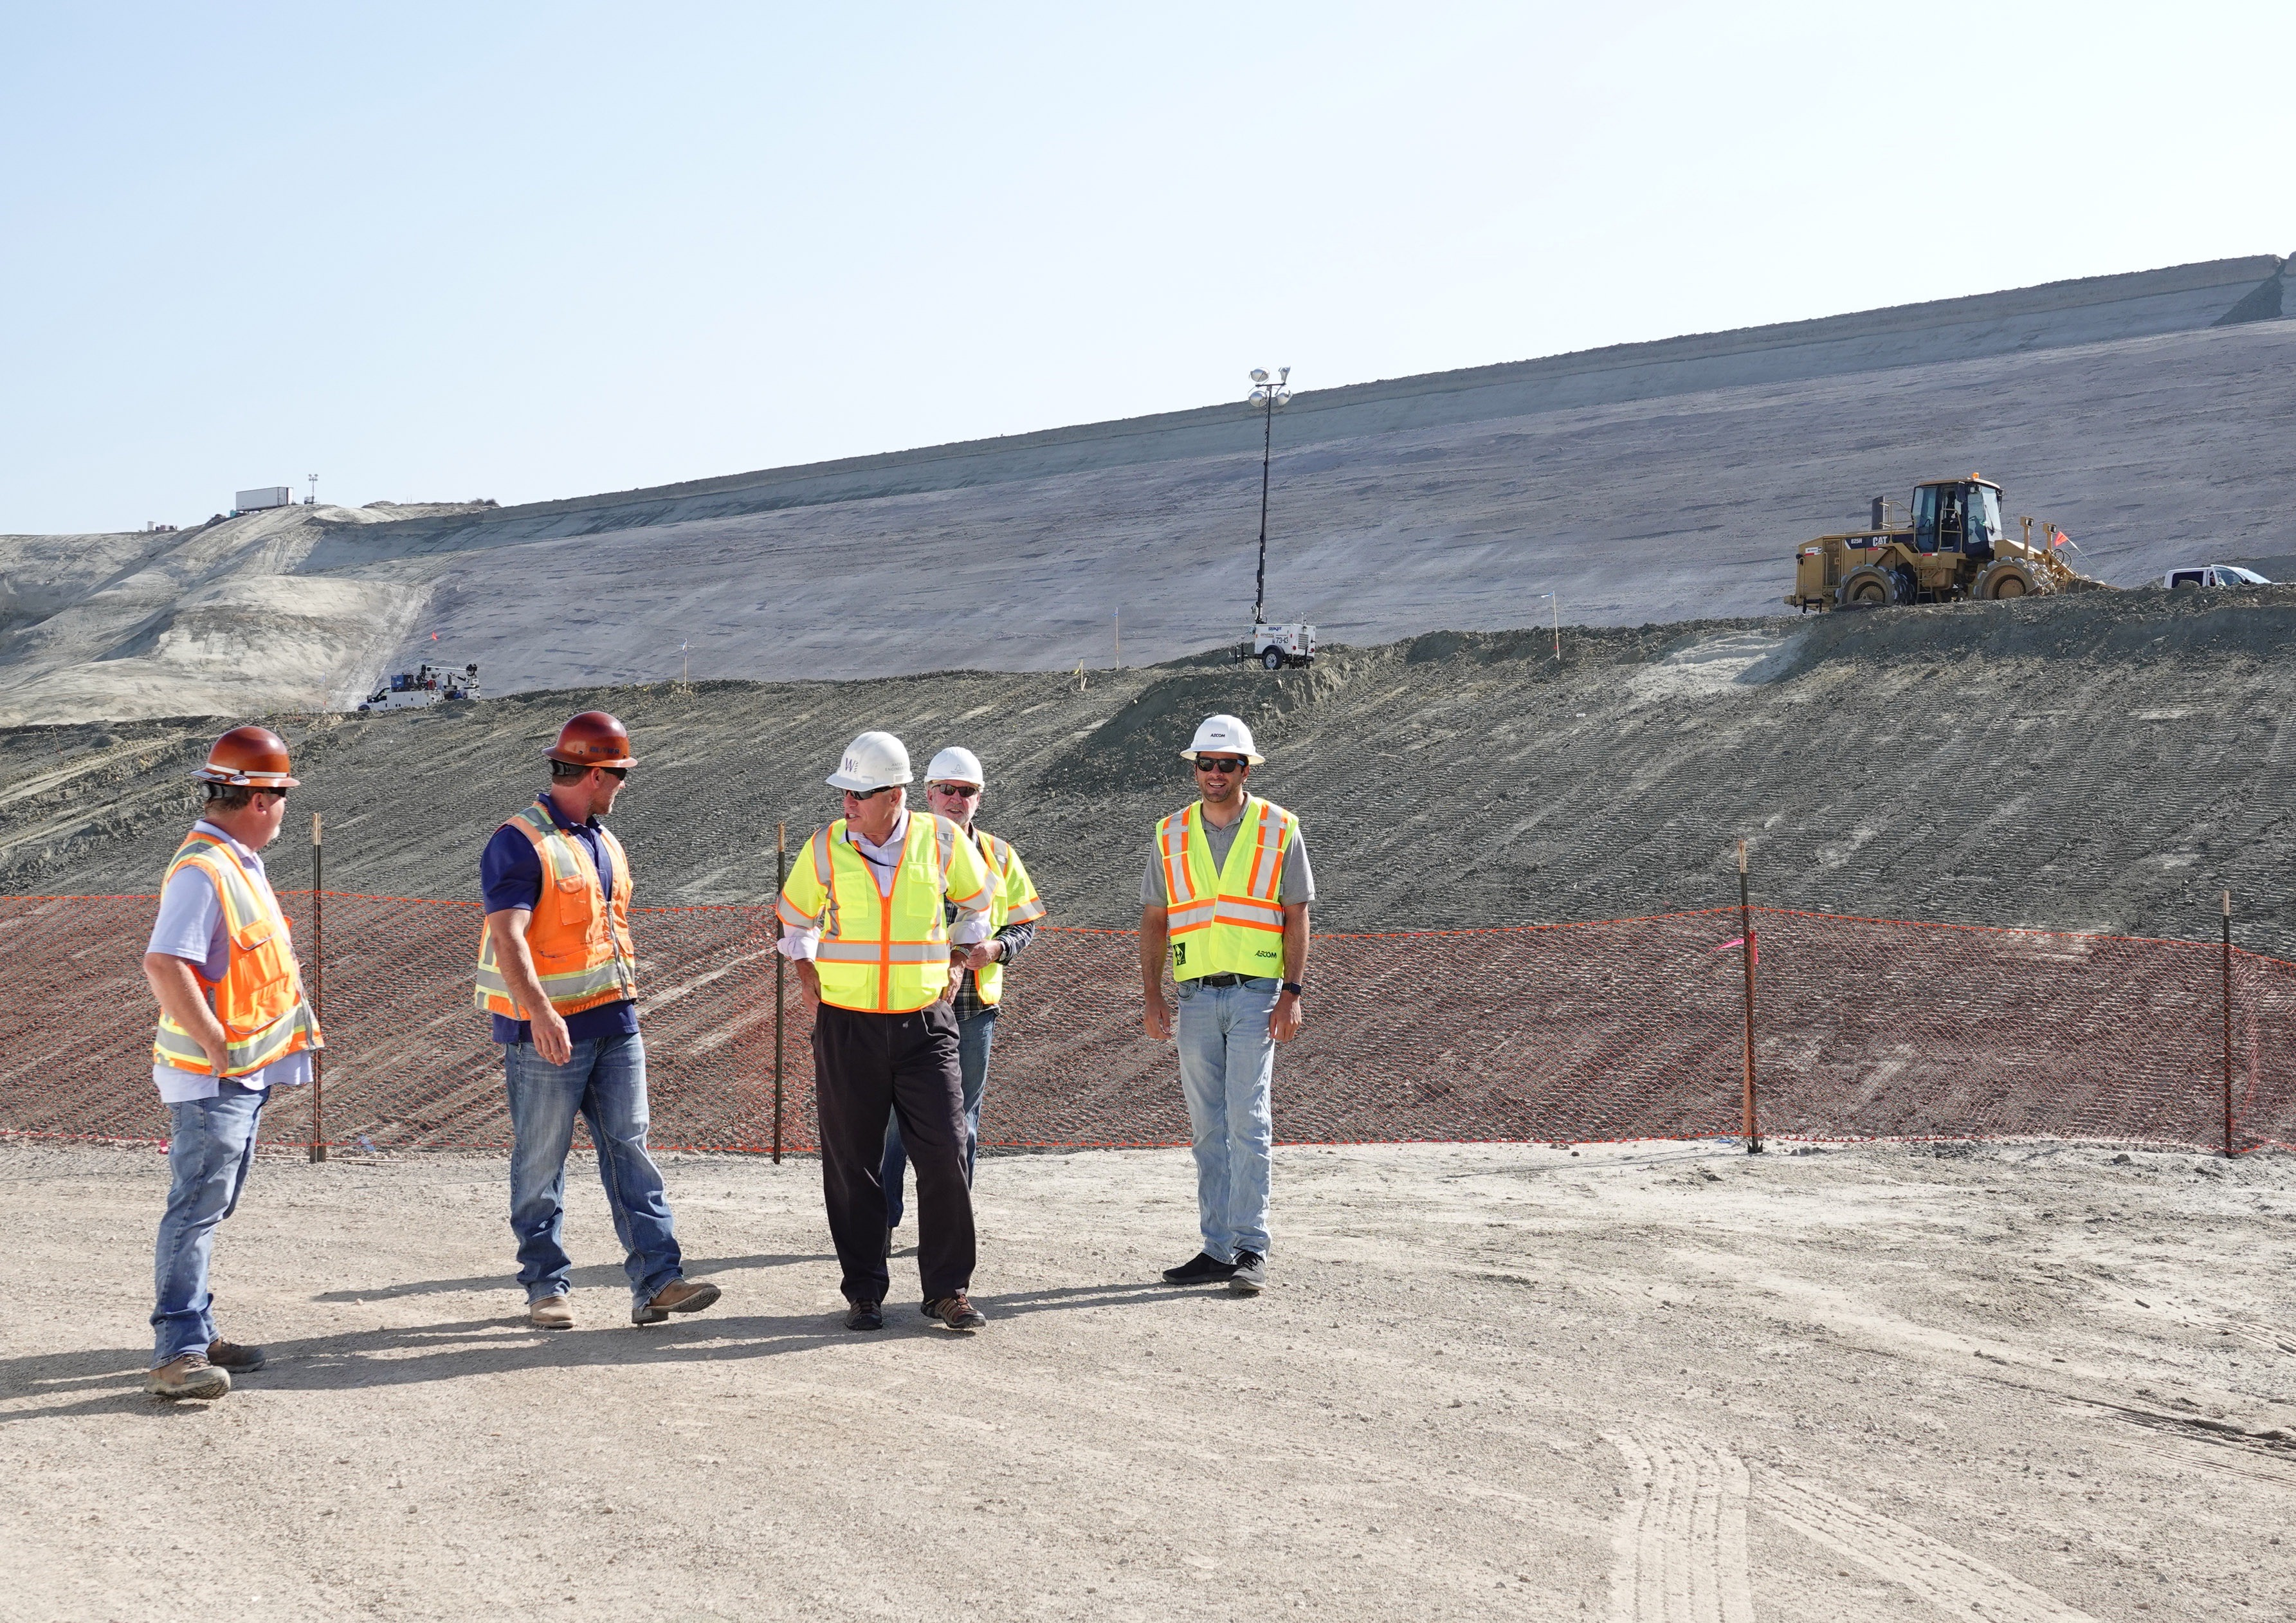 In San Clemente's backyard, directly behind Talega, the wall for a dam rises up to contain a reservoir that will be able to store 1.6 billion gallons of recycled water. Photo: Fred Swegles